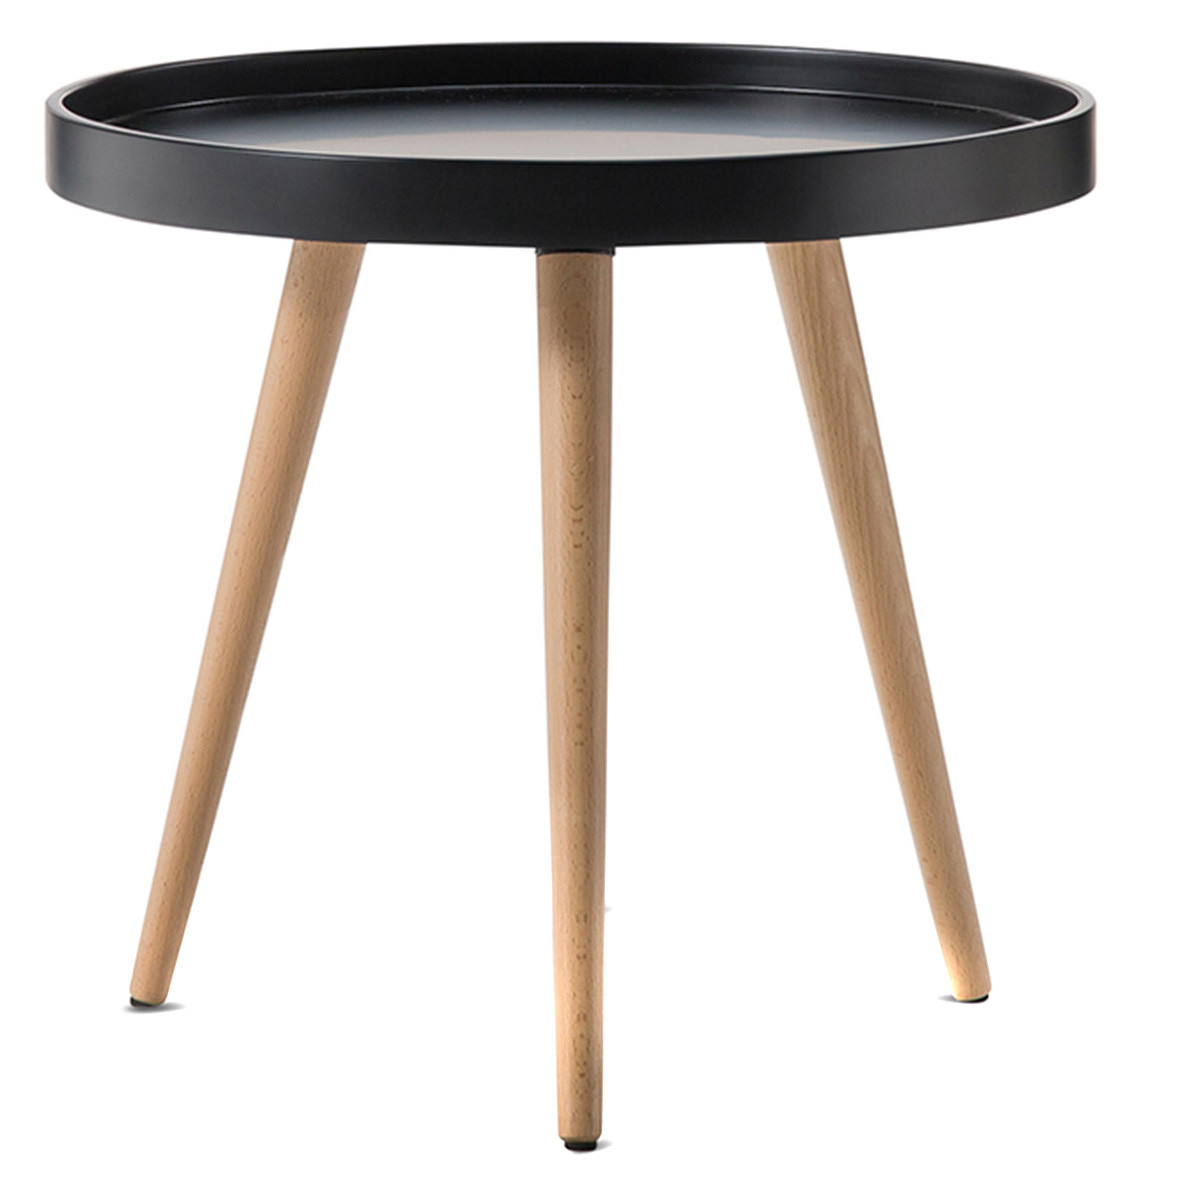 New scandi tray side table ebay for Tray side table